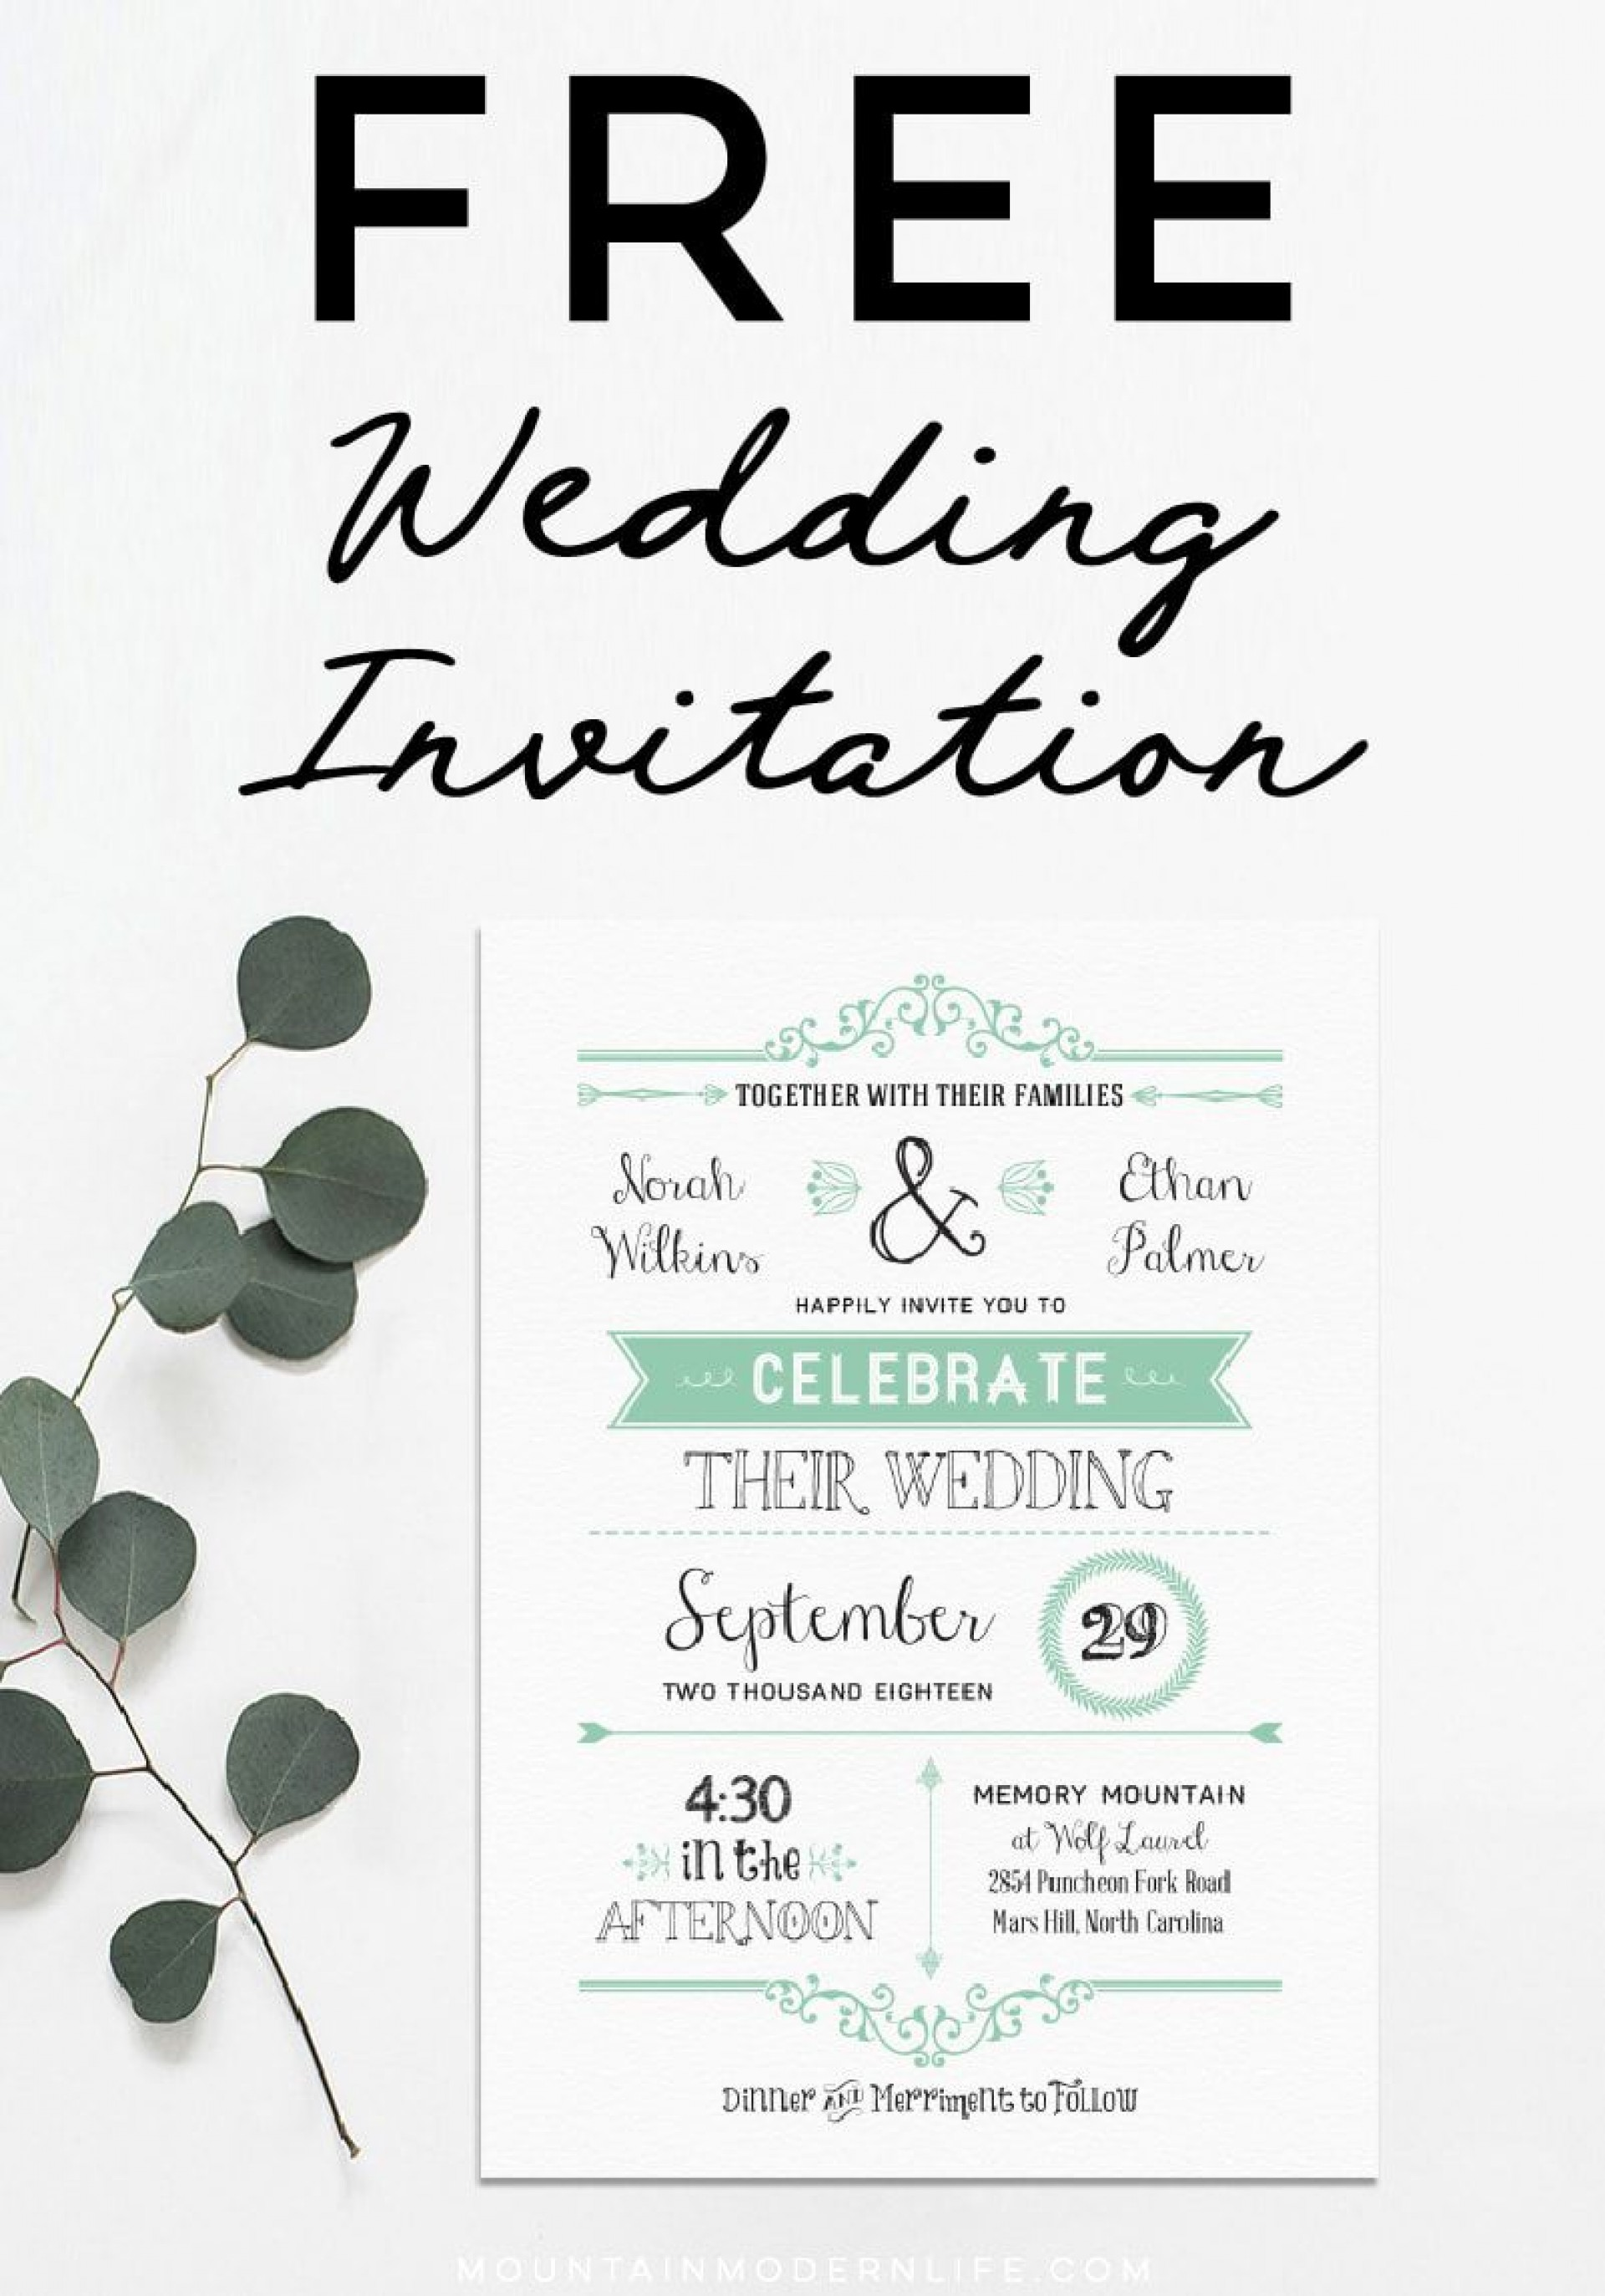 006 Staggering Celebration Of Life Invite Template Free Photo  Invitation Download1920